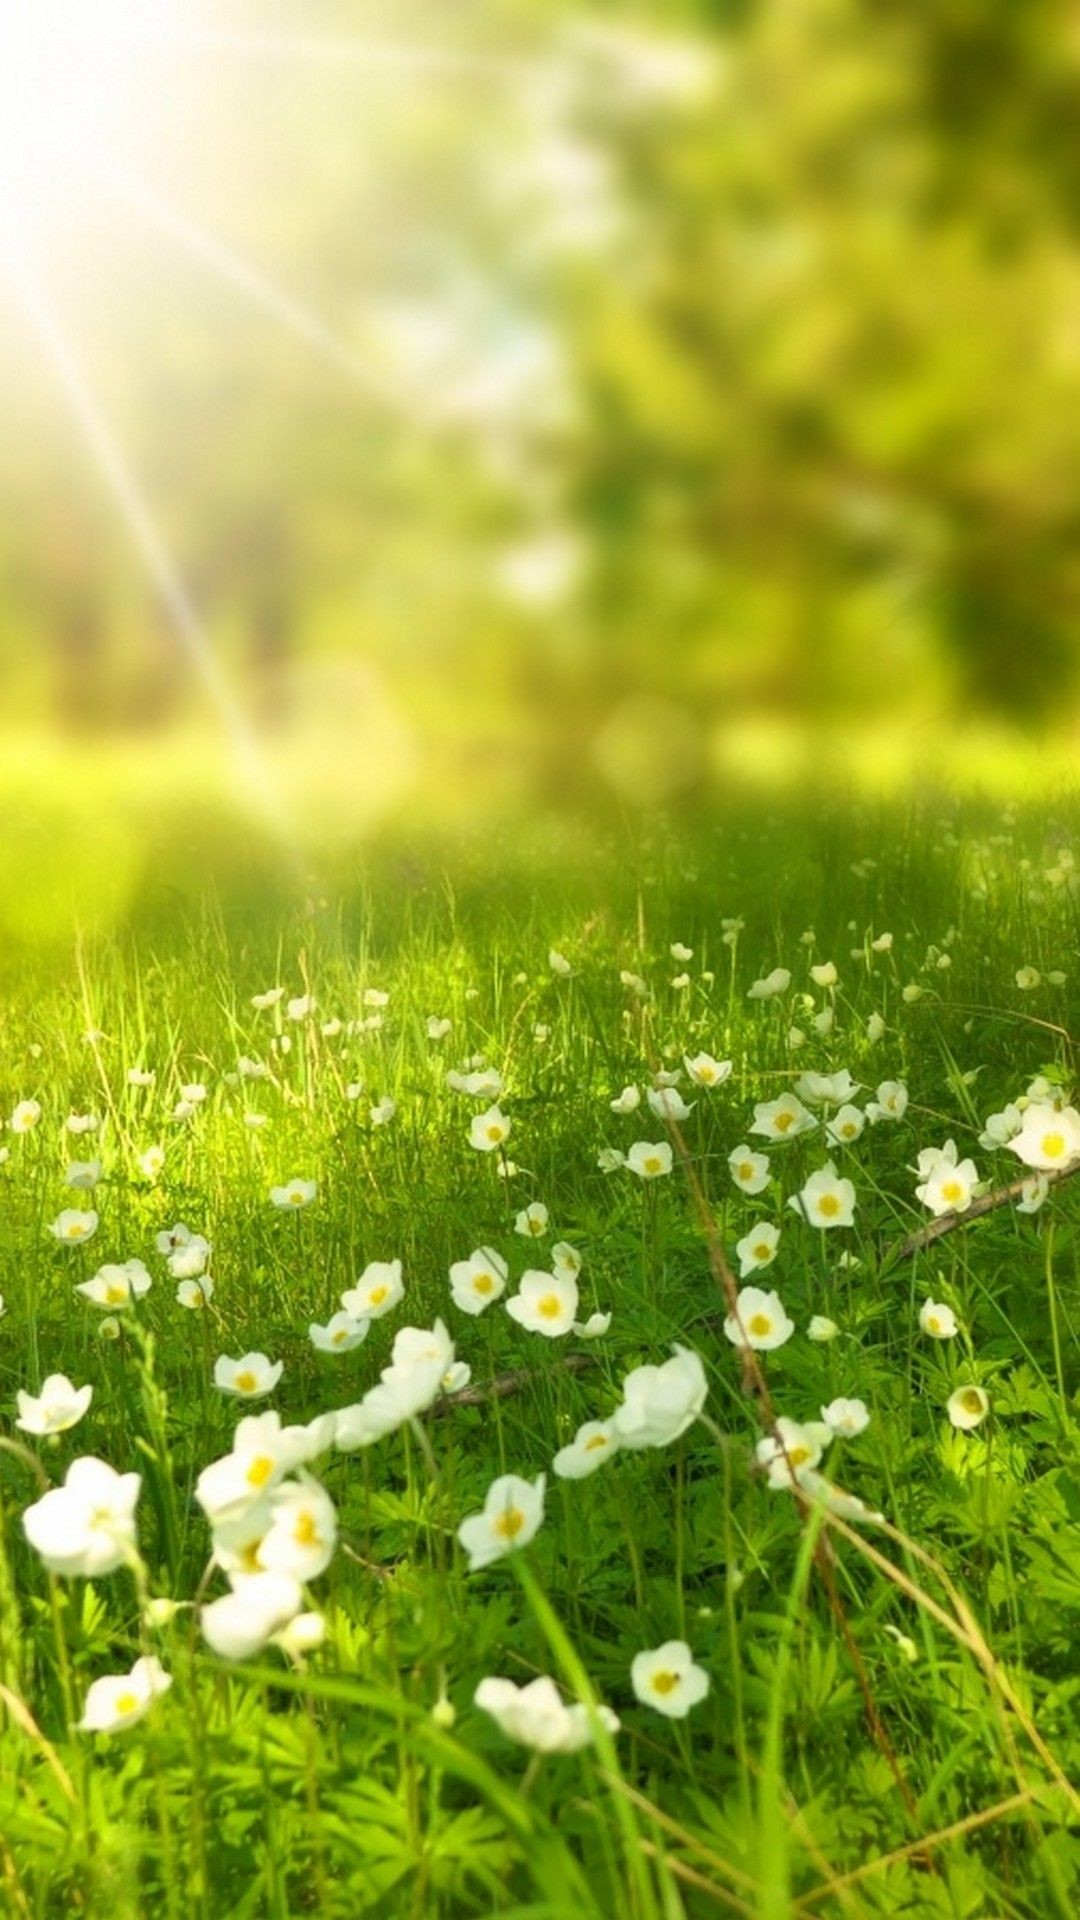 1920x1200 Green Grass Spring Season Wallpaper Hd Free